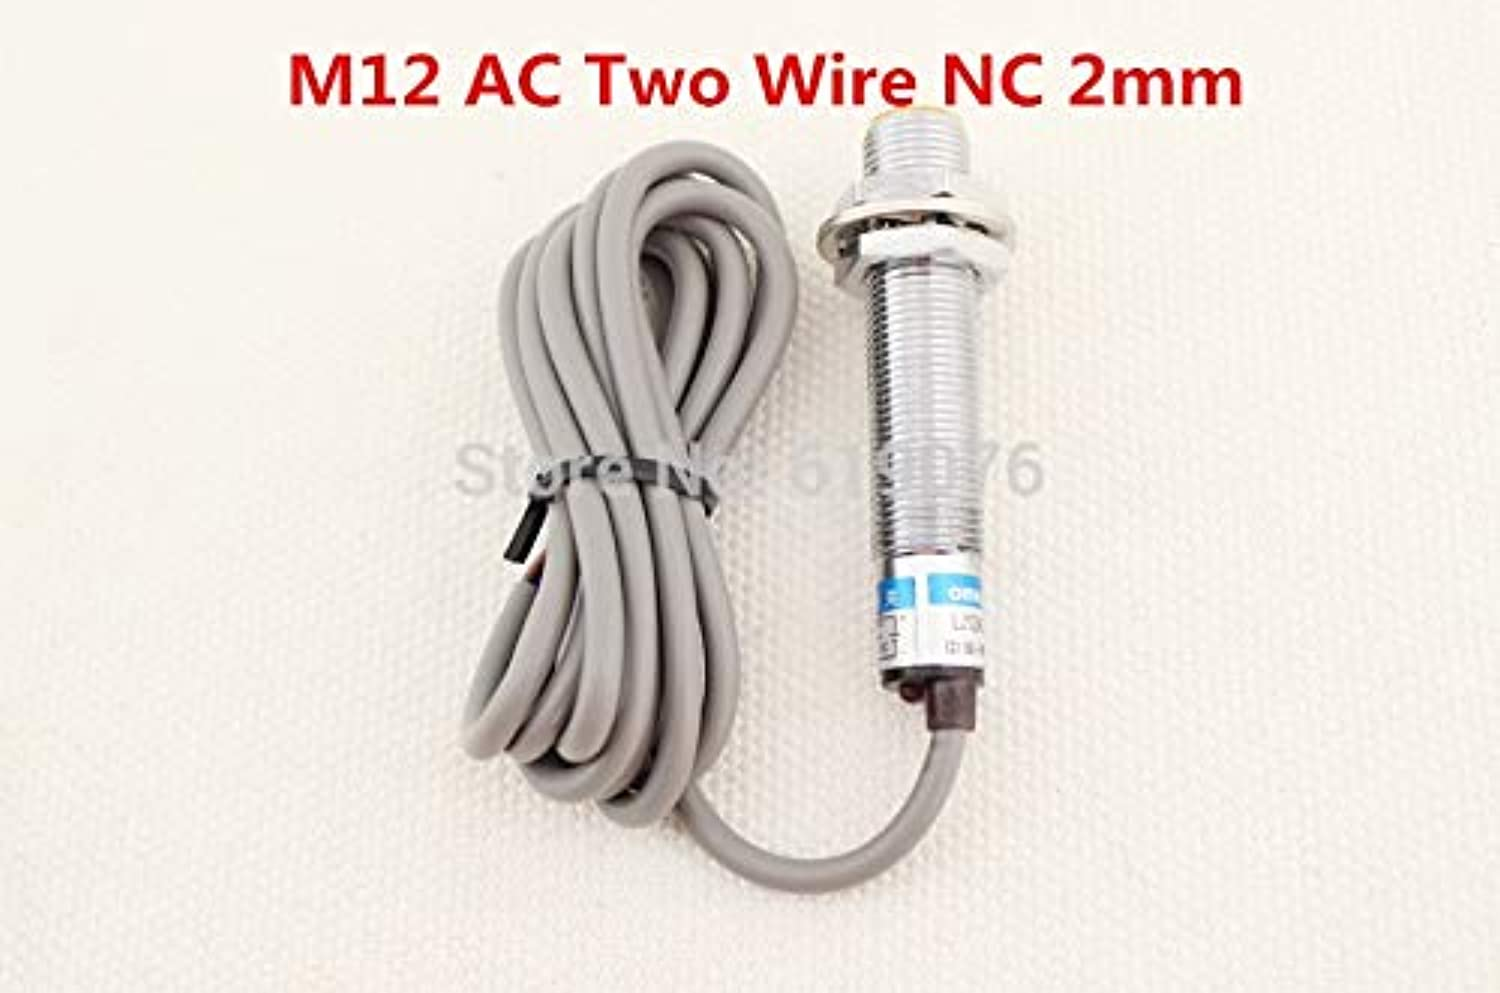 5Pcs M12 AC Two Wire NC 2mm Distance Measuring Inductive Proximity Switch Sensor LJ12A32J DZ